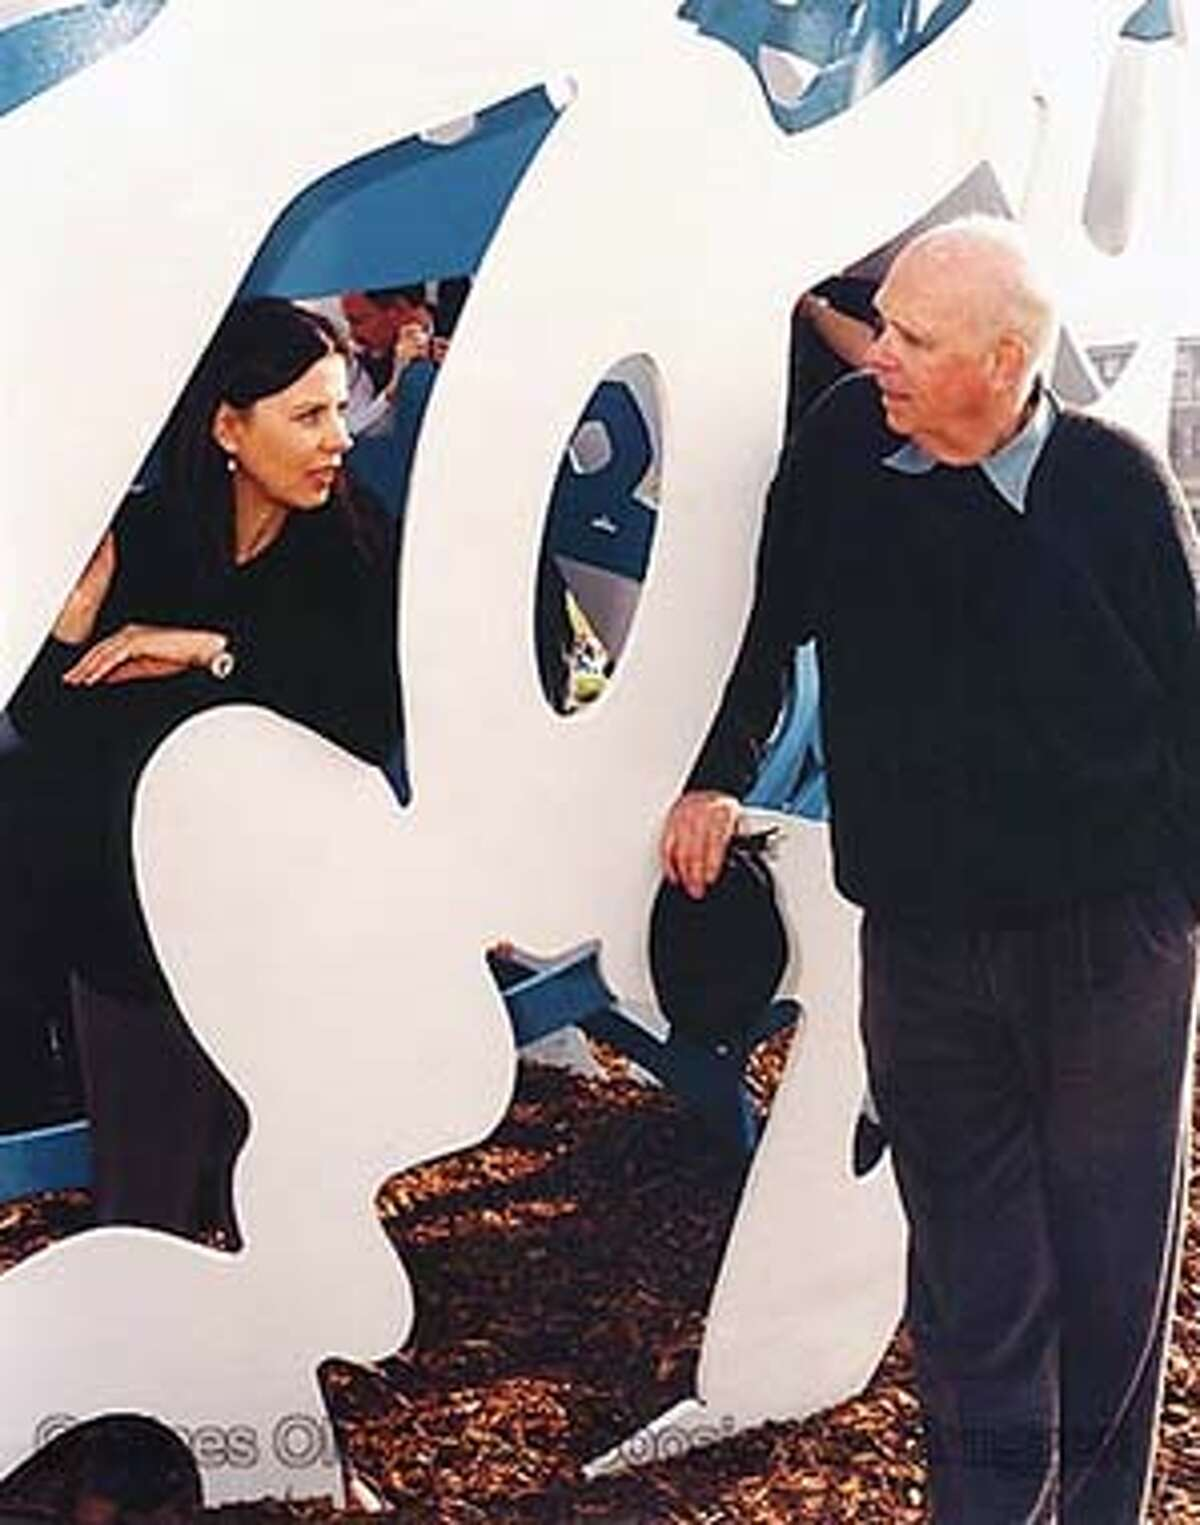 Coosje van Bruggen and Claes Oldenburg at the inauguration of Bottle of Notes,1944, in Middlesbrough , England. HANDOUT PHOTO/Hazel Gall